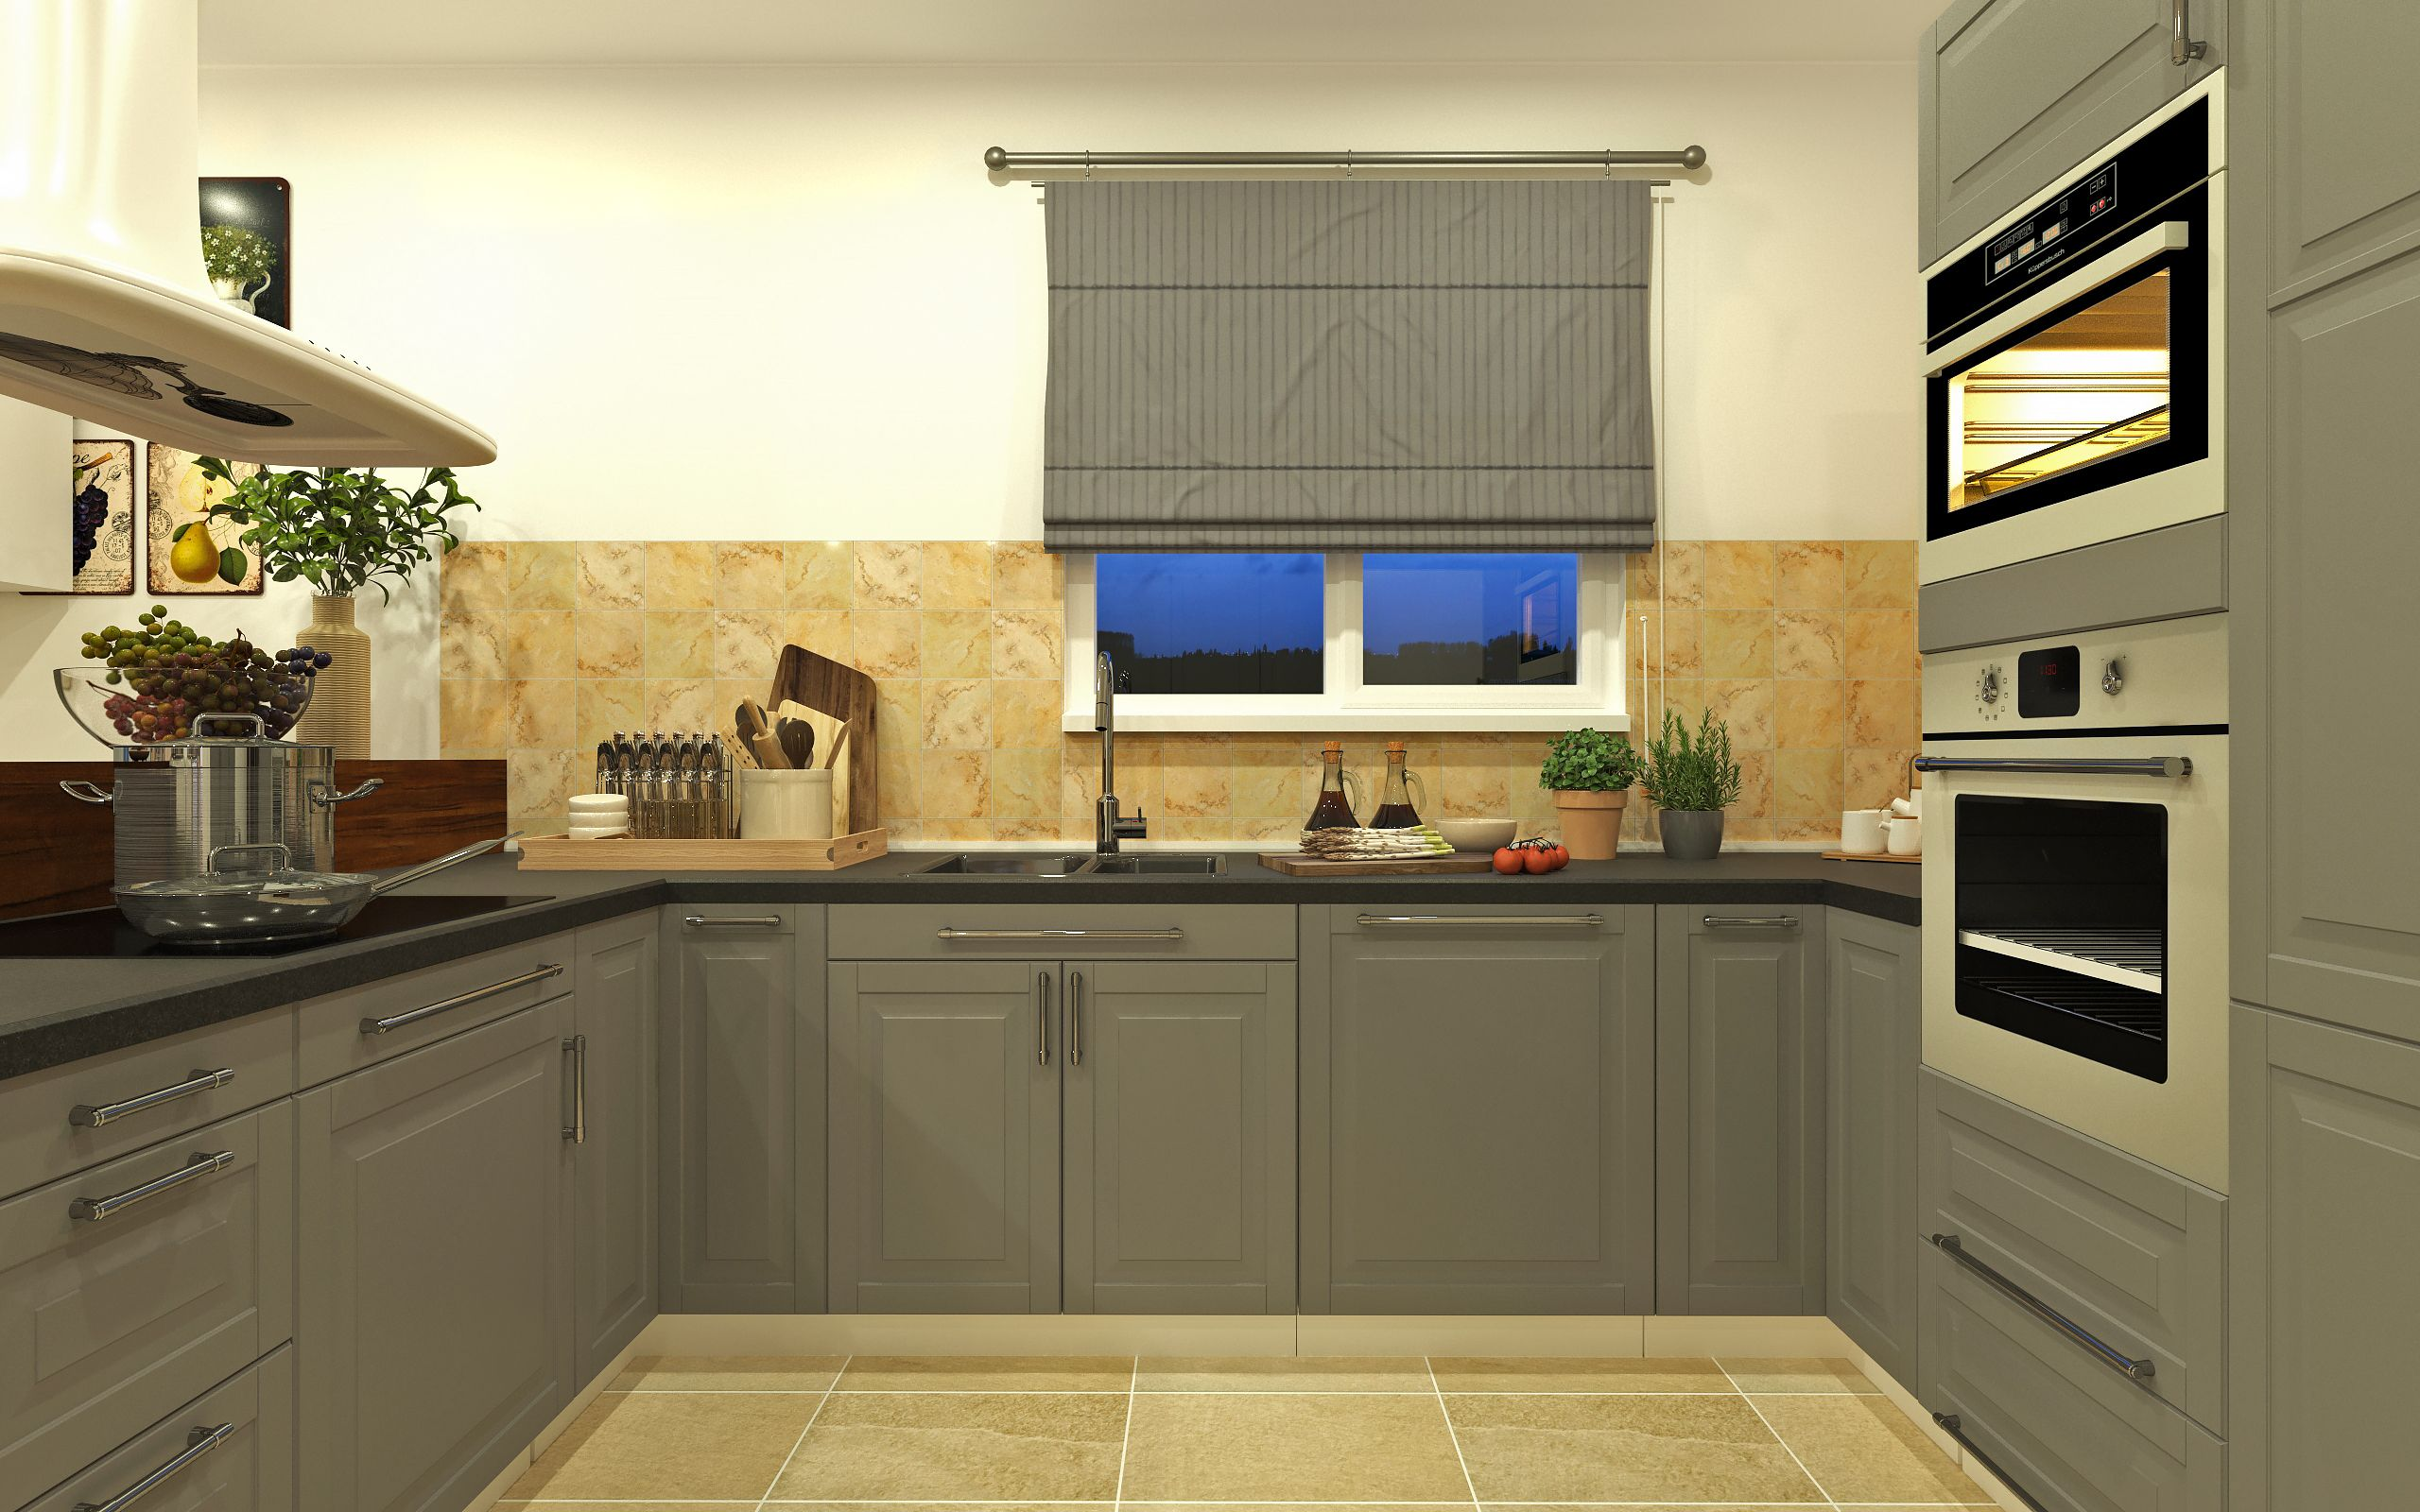 Kitchen Design, 3ds Max, Corona Renderer, IKEA